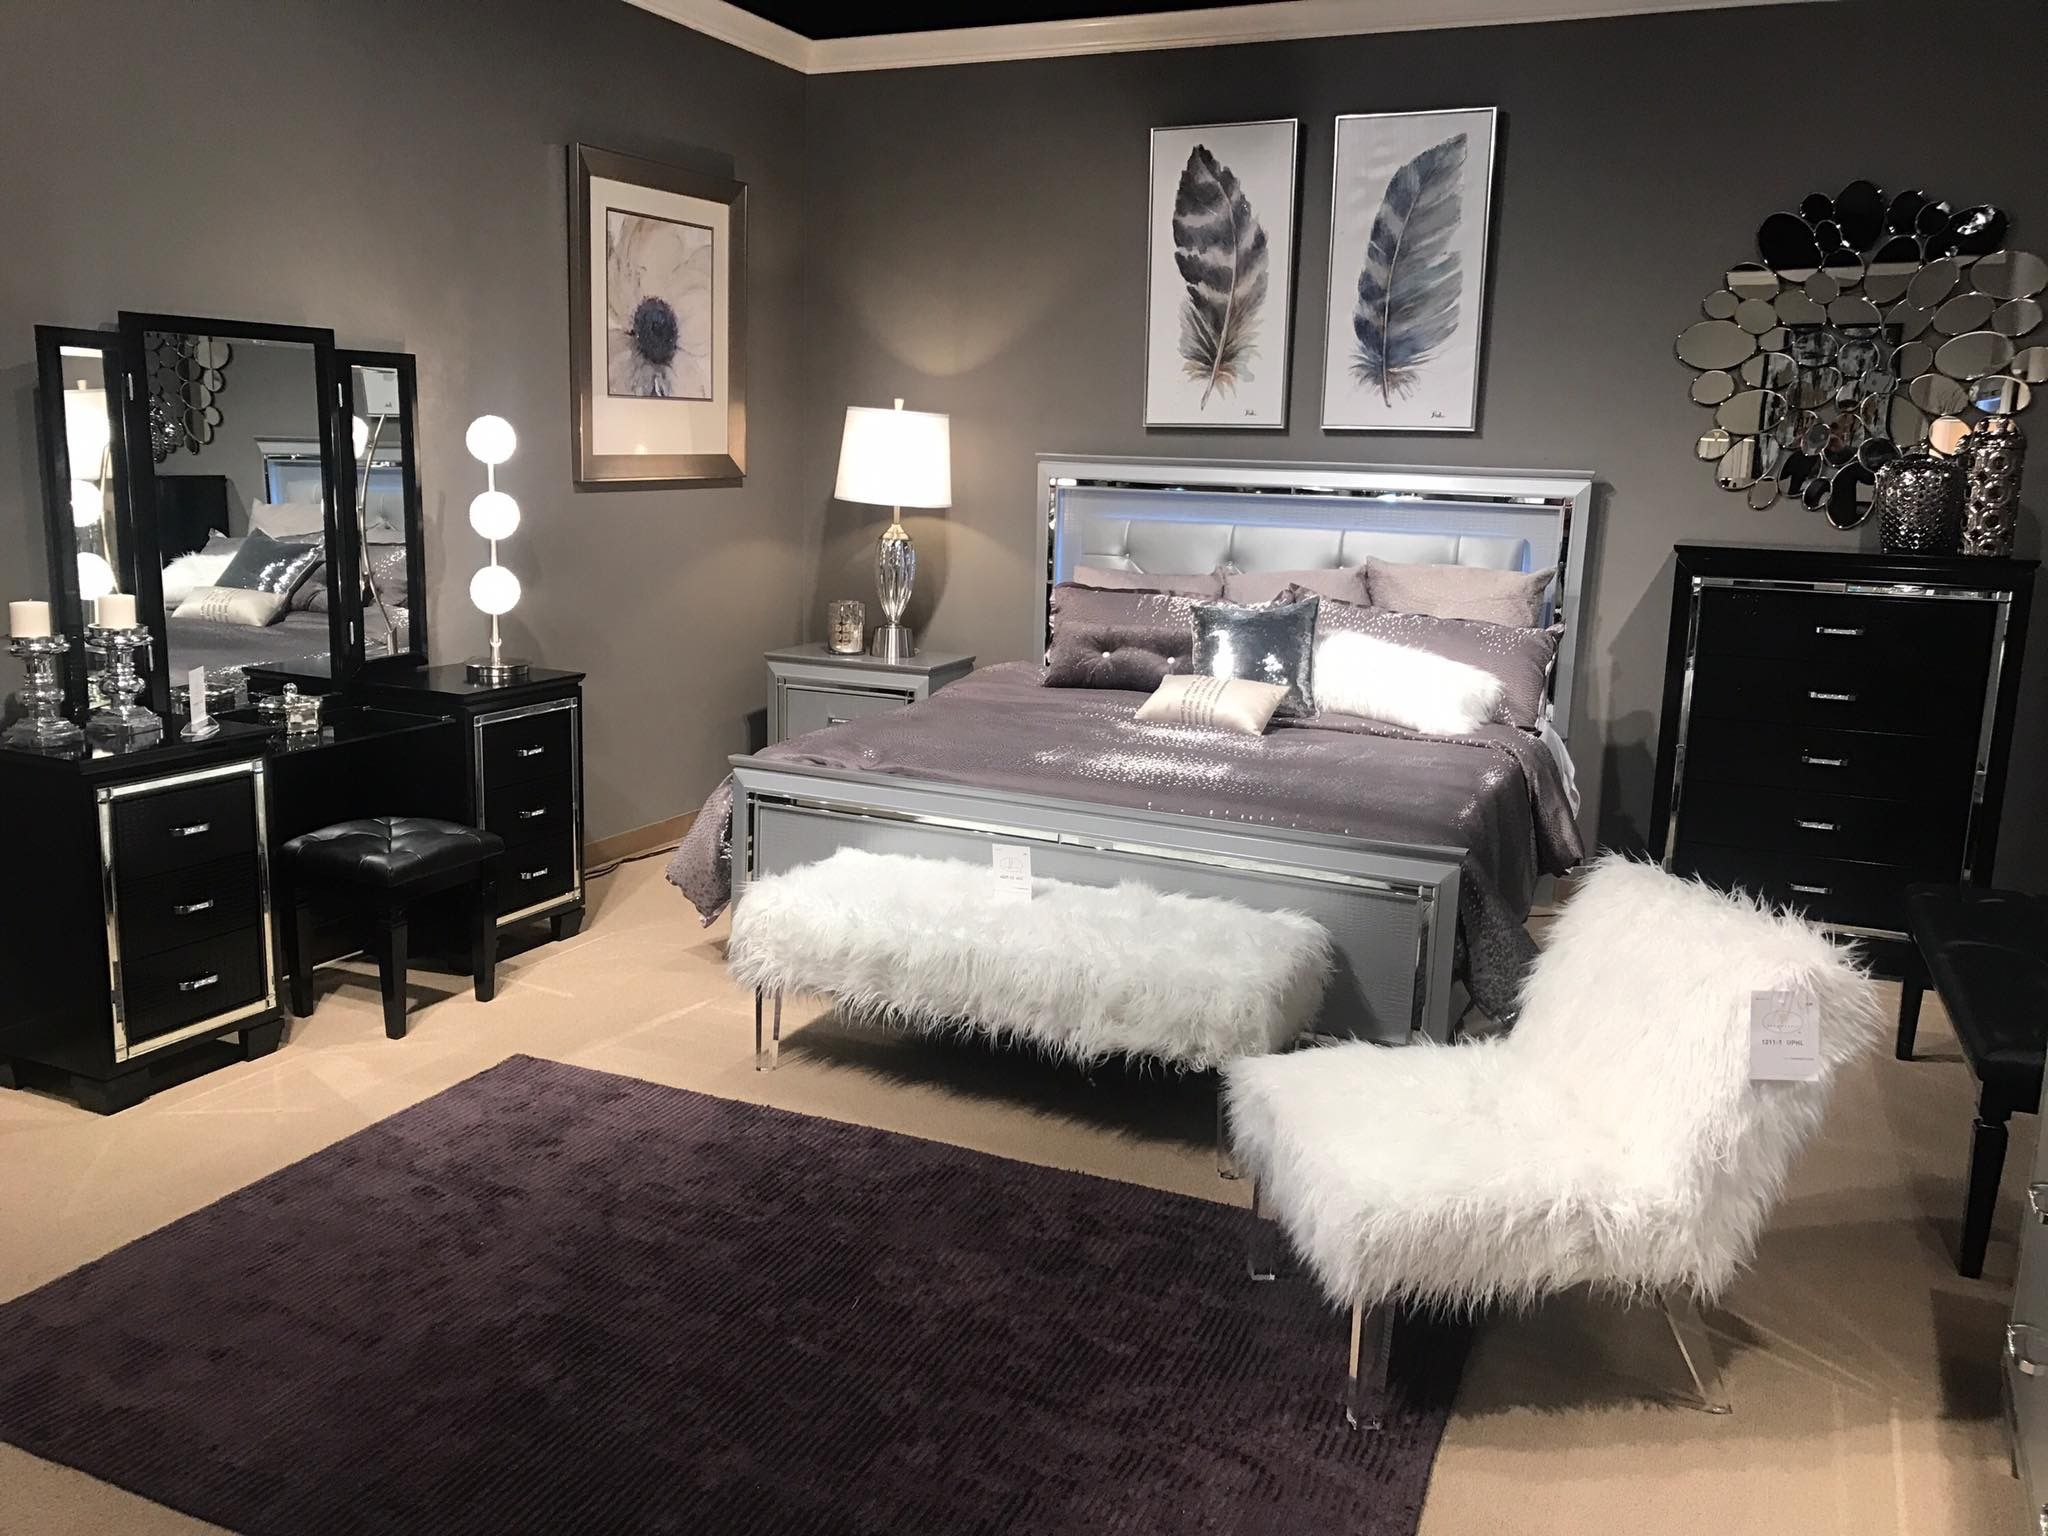 Pin by samantha perez on bedroom pinterest bedrooms room and